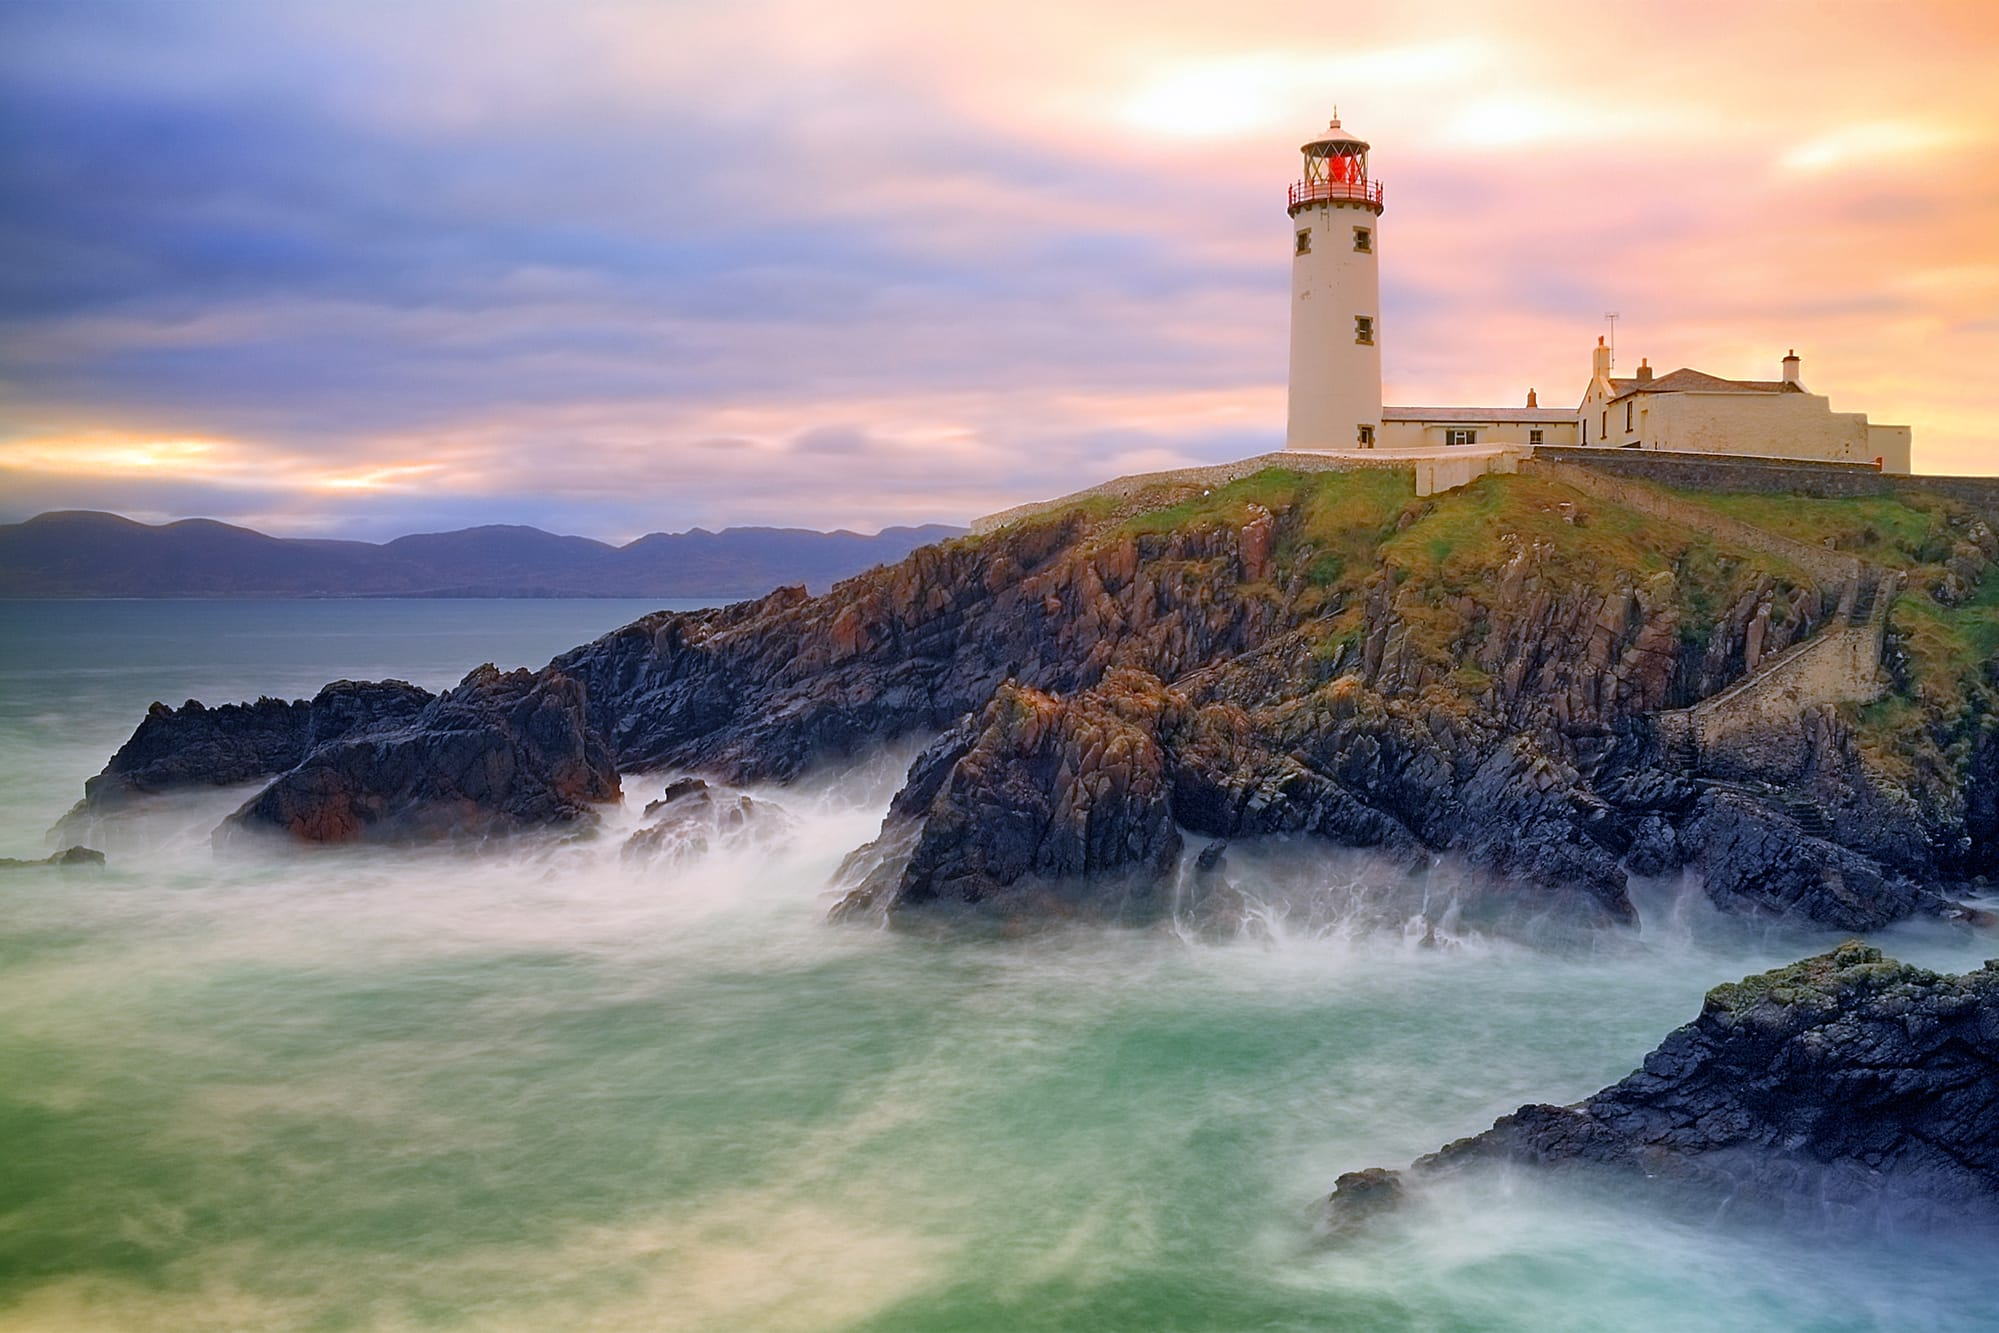 Fanad Lighthouse sits on cliffs above stormy bay, Co. Donegal, Ireland